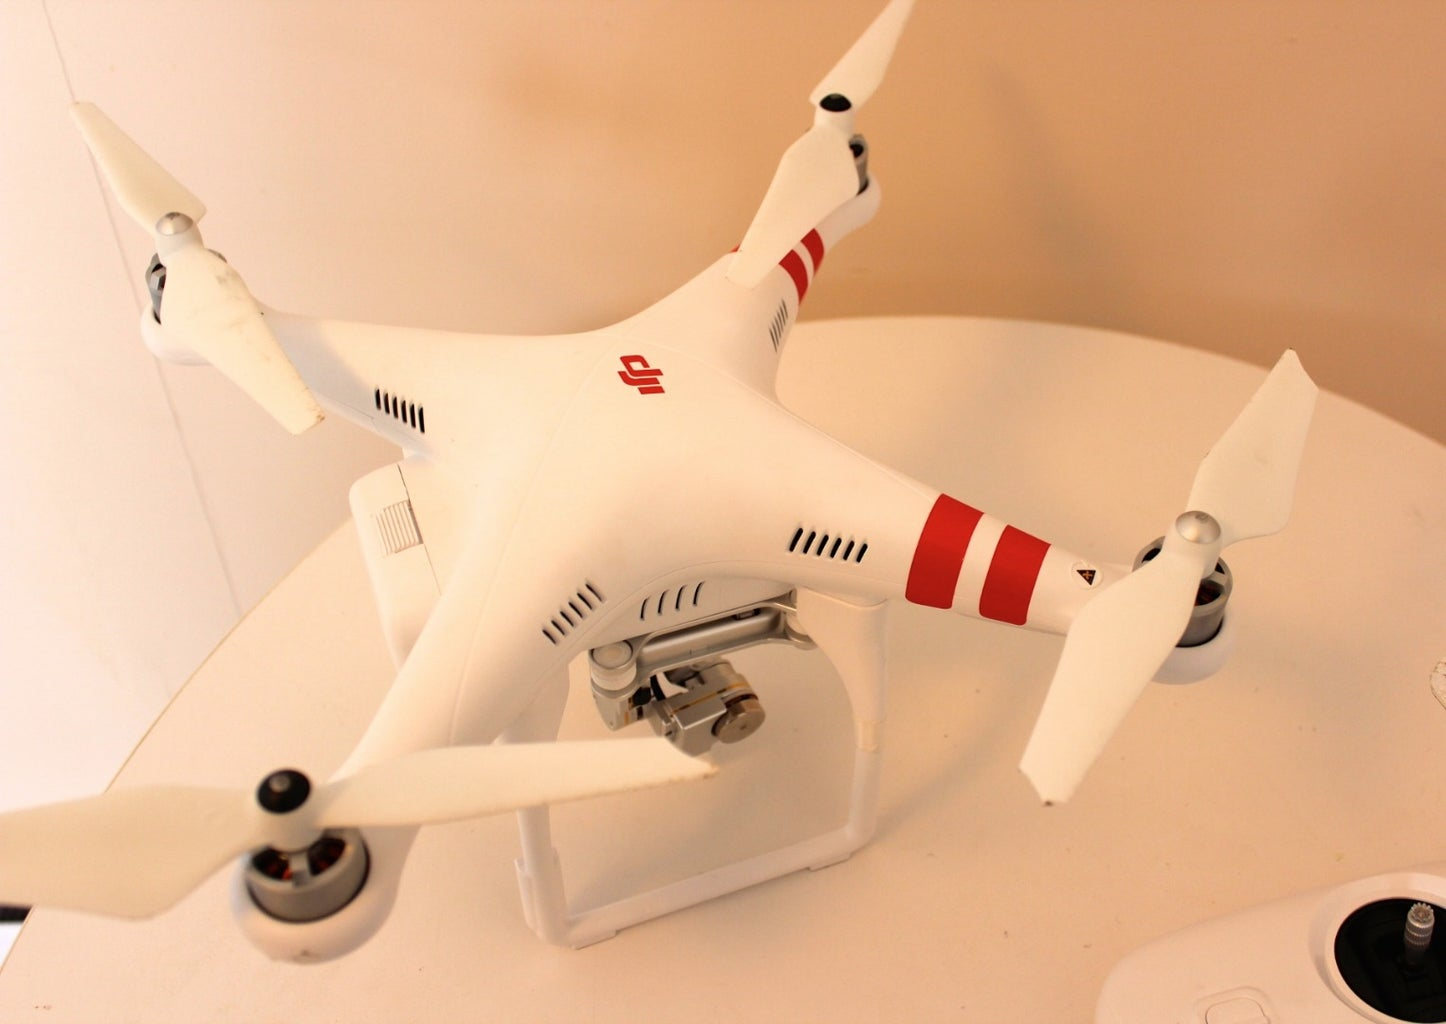 Upcoming Work on Drone Air Two